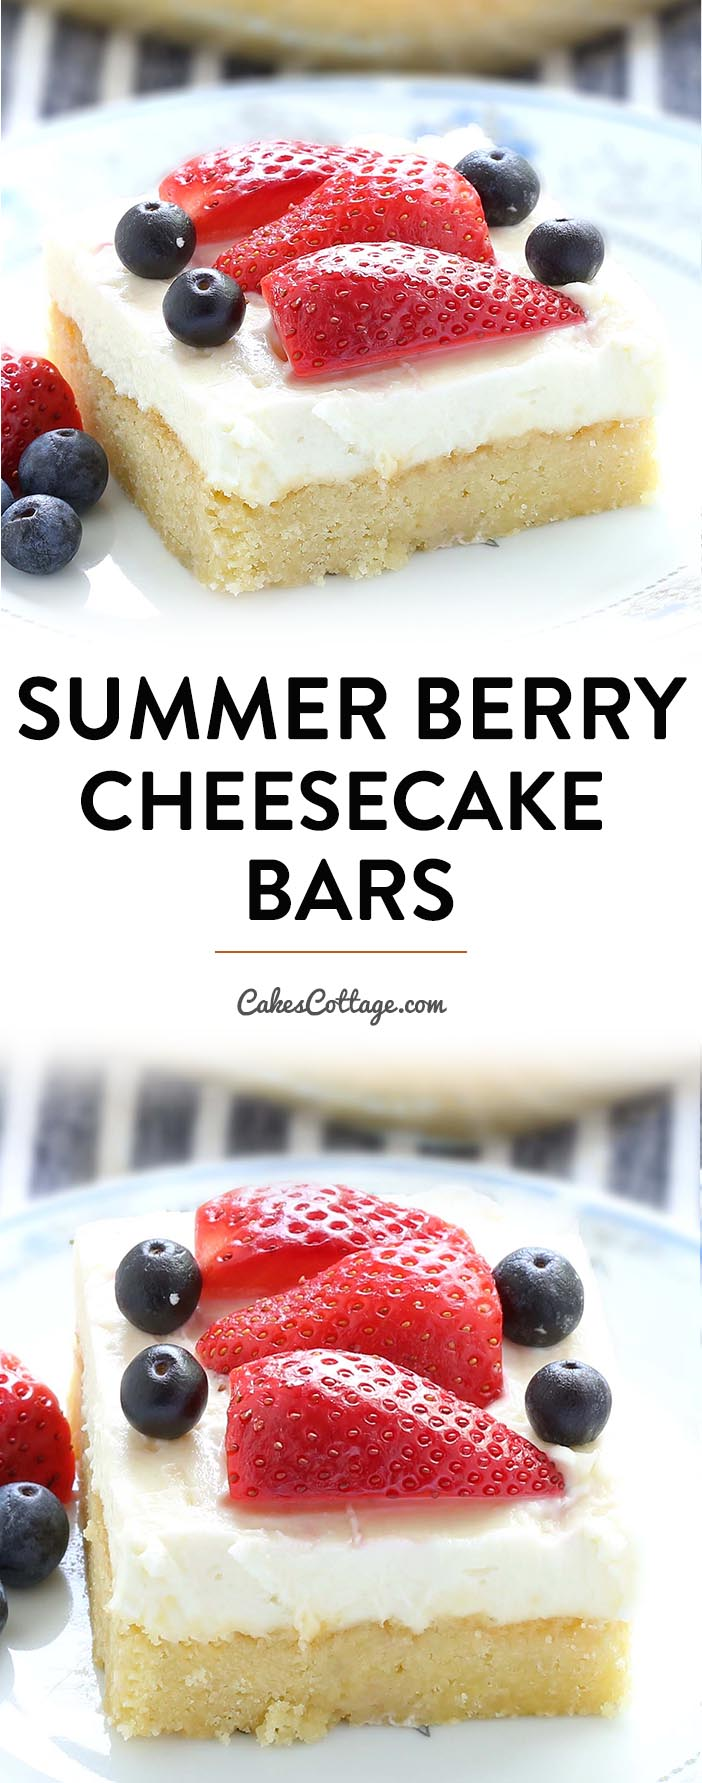 These summer berry cheesecake bars will be the hit at your next summer picnic! Quick to make buttery crust, topped with luscious cheesecake layer and piled high with fresh berries.